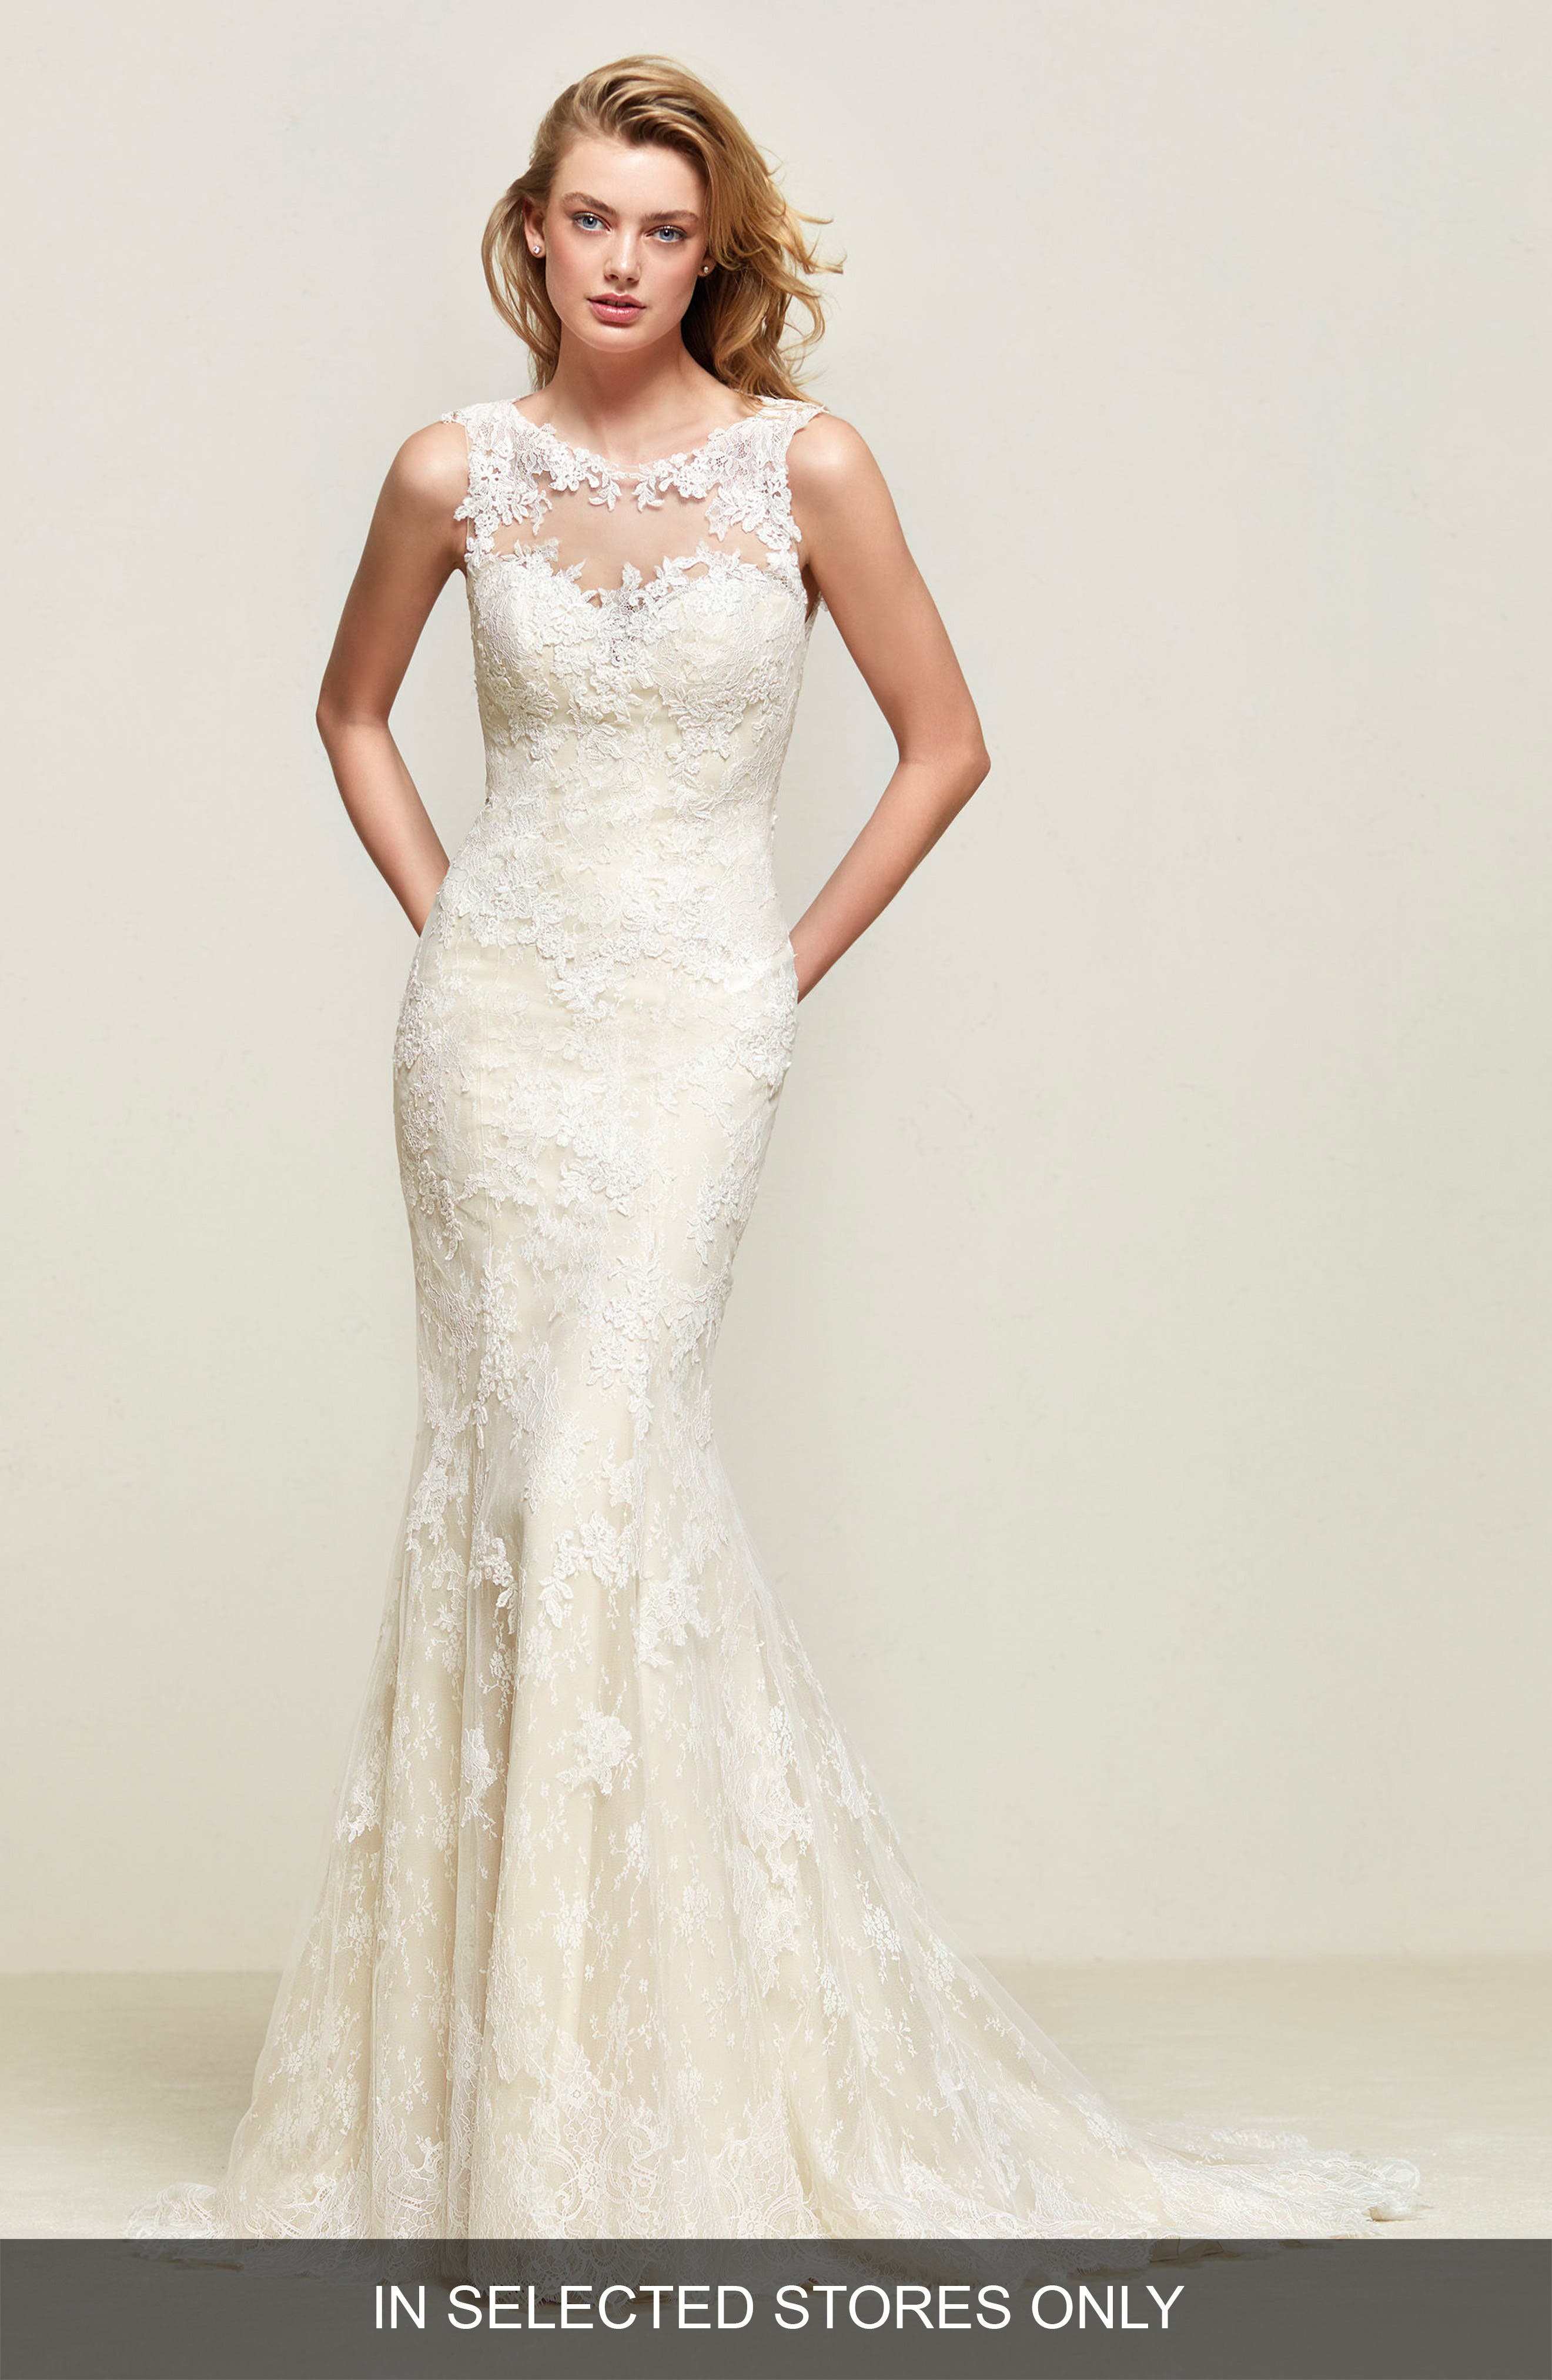 Main Image - Pronovias Driades Embellished Lace Mermaid Gown